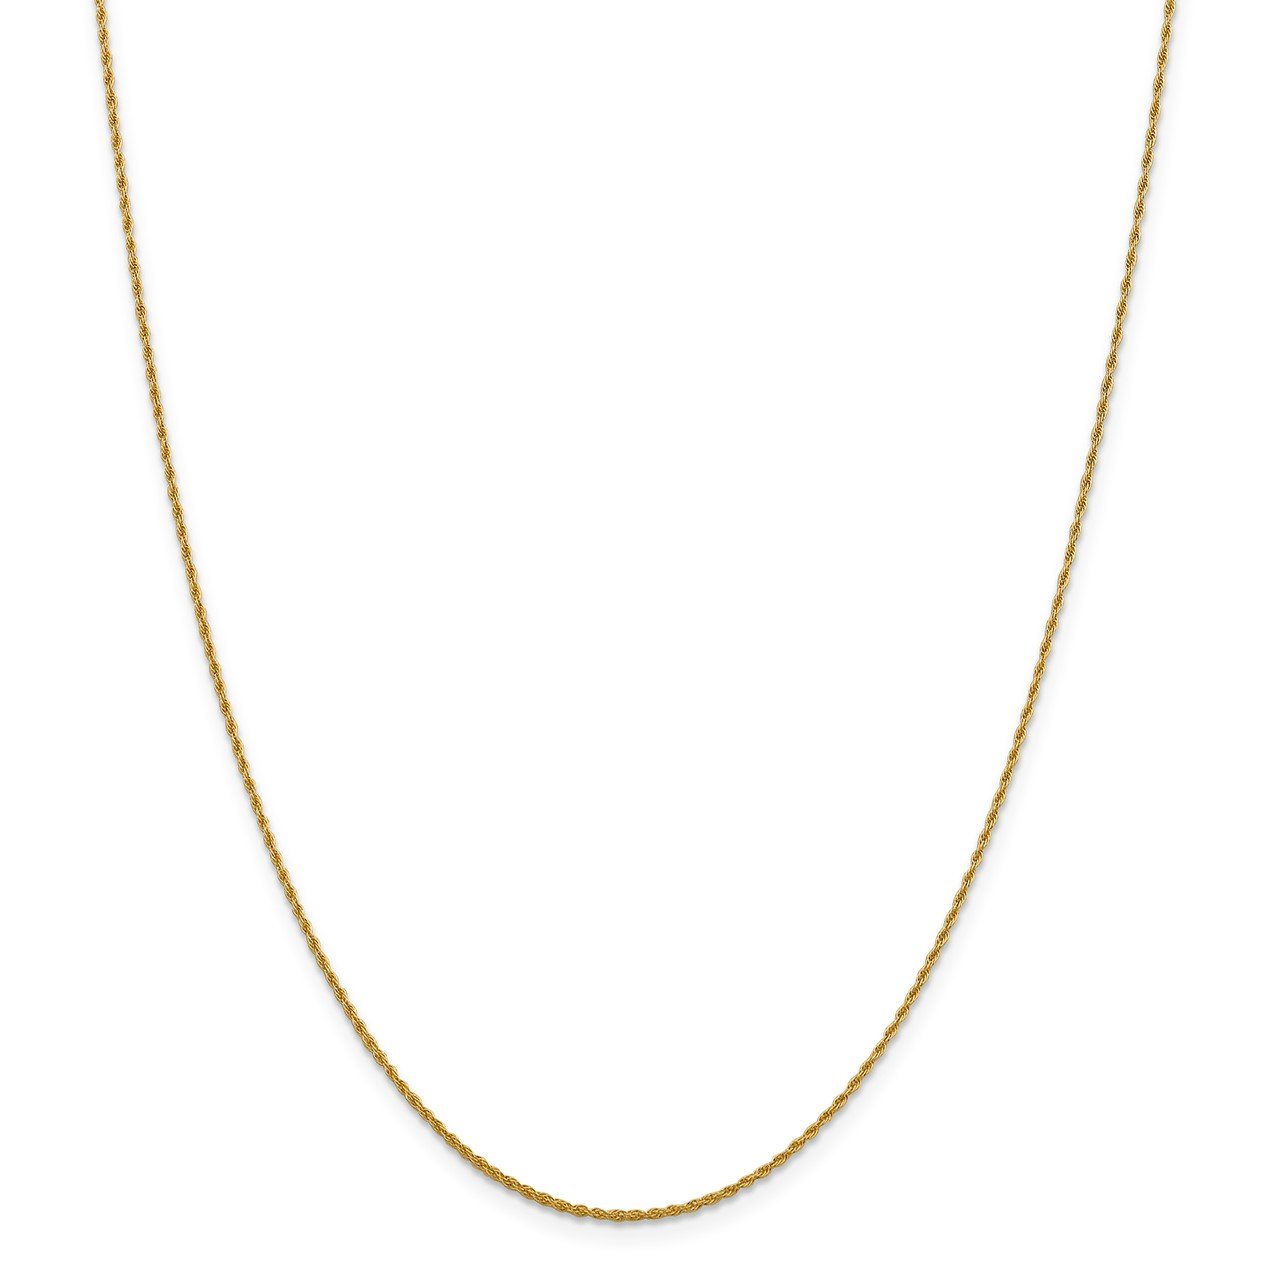 Leslie's 14K 1.3mm Loose Rope Chain